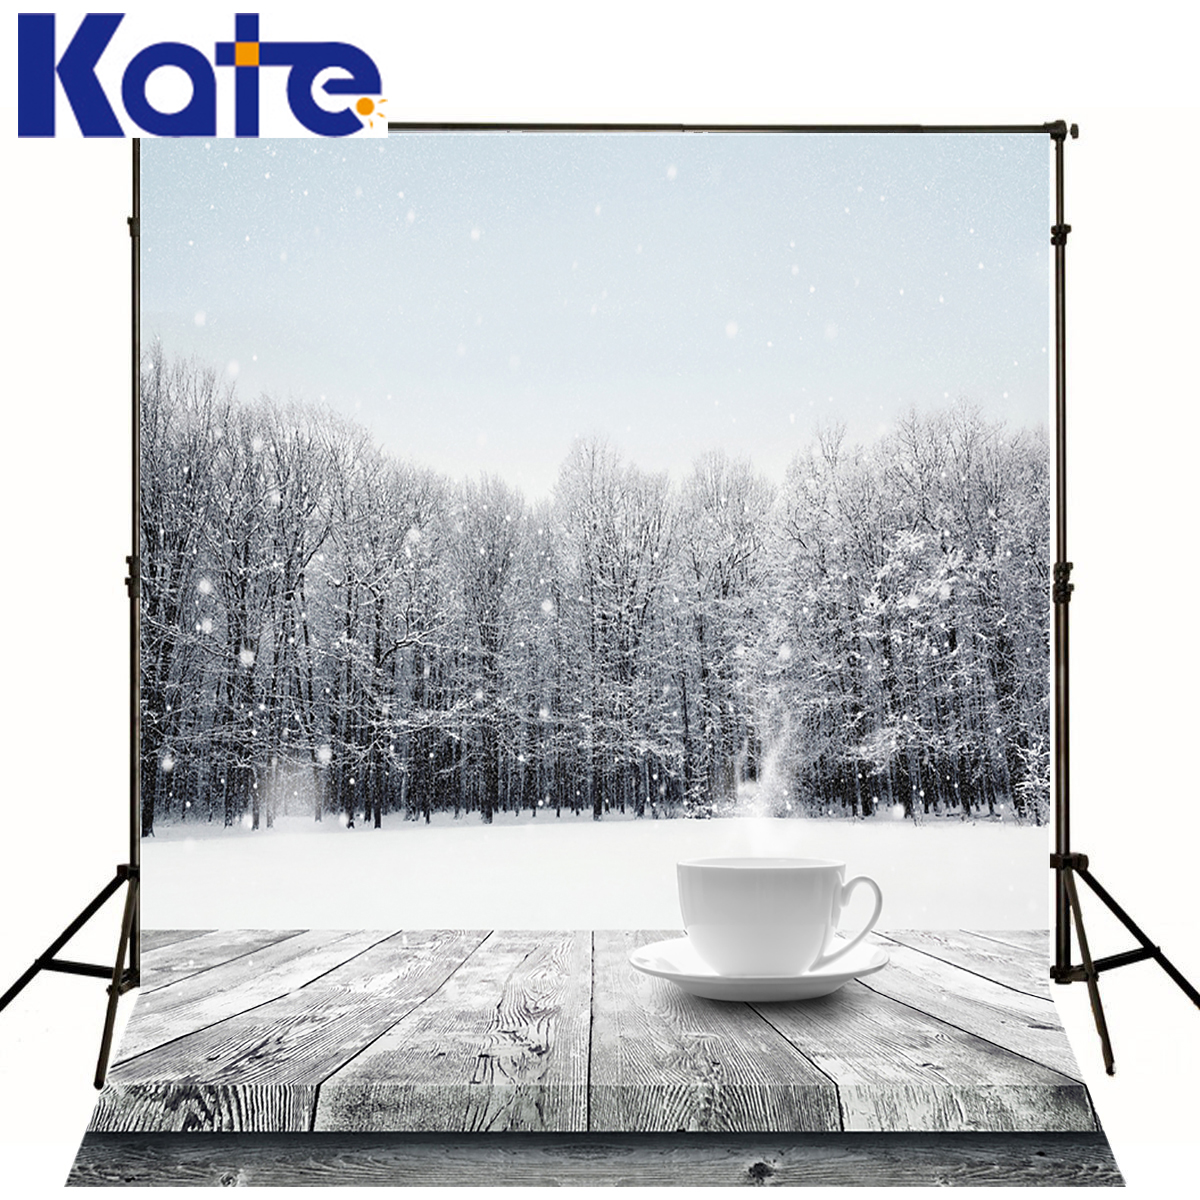 KATE Photo Background Coffee Wood Table Floor Backdrop Scenery Background Fall Spot Forest Backgrounds For Photo Shoot Studio